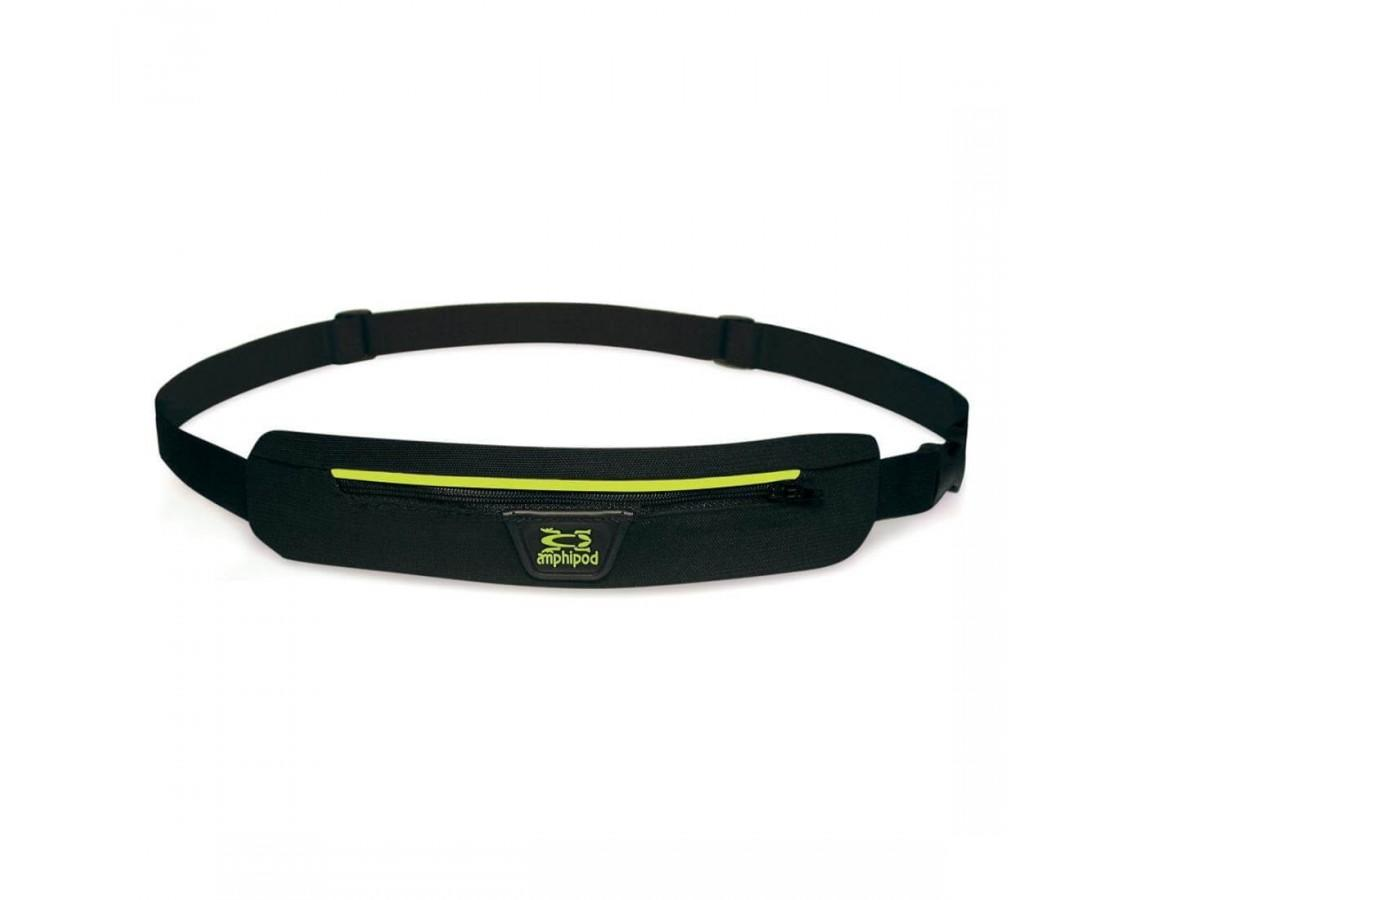 The Amphipod Airflow Microstretch Belt features an adjustable belt